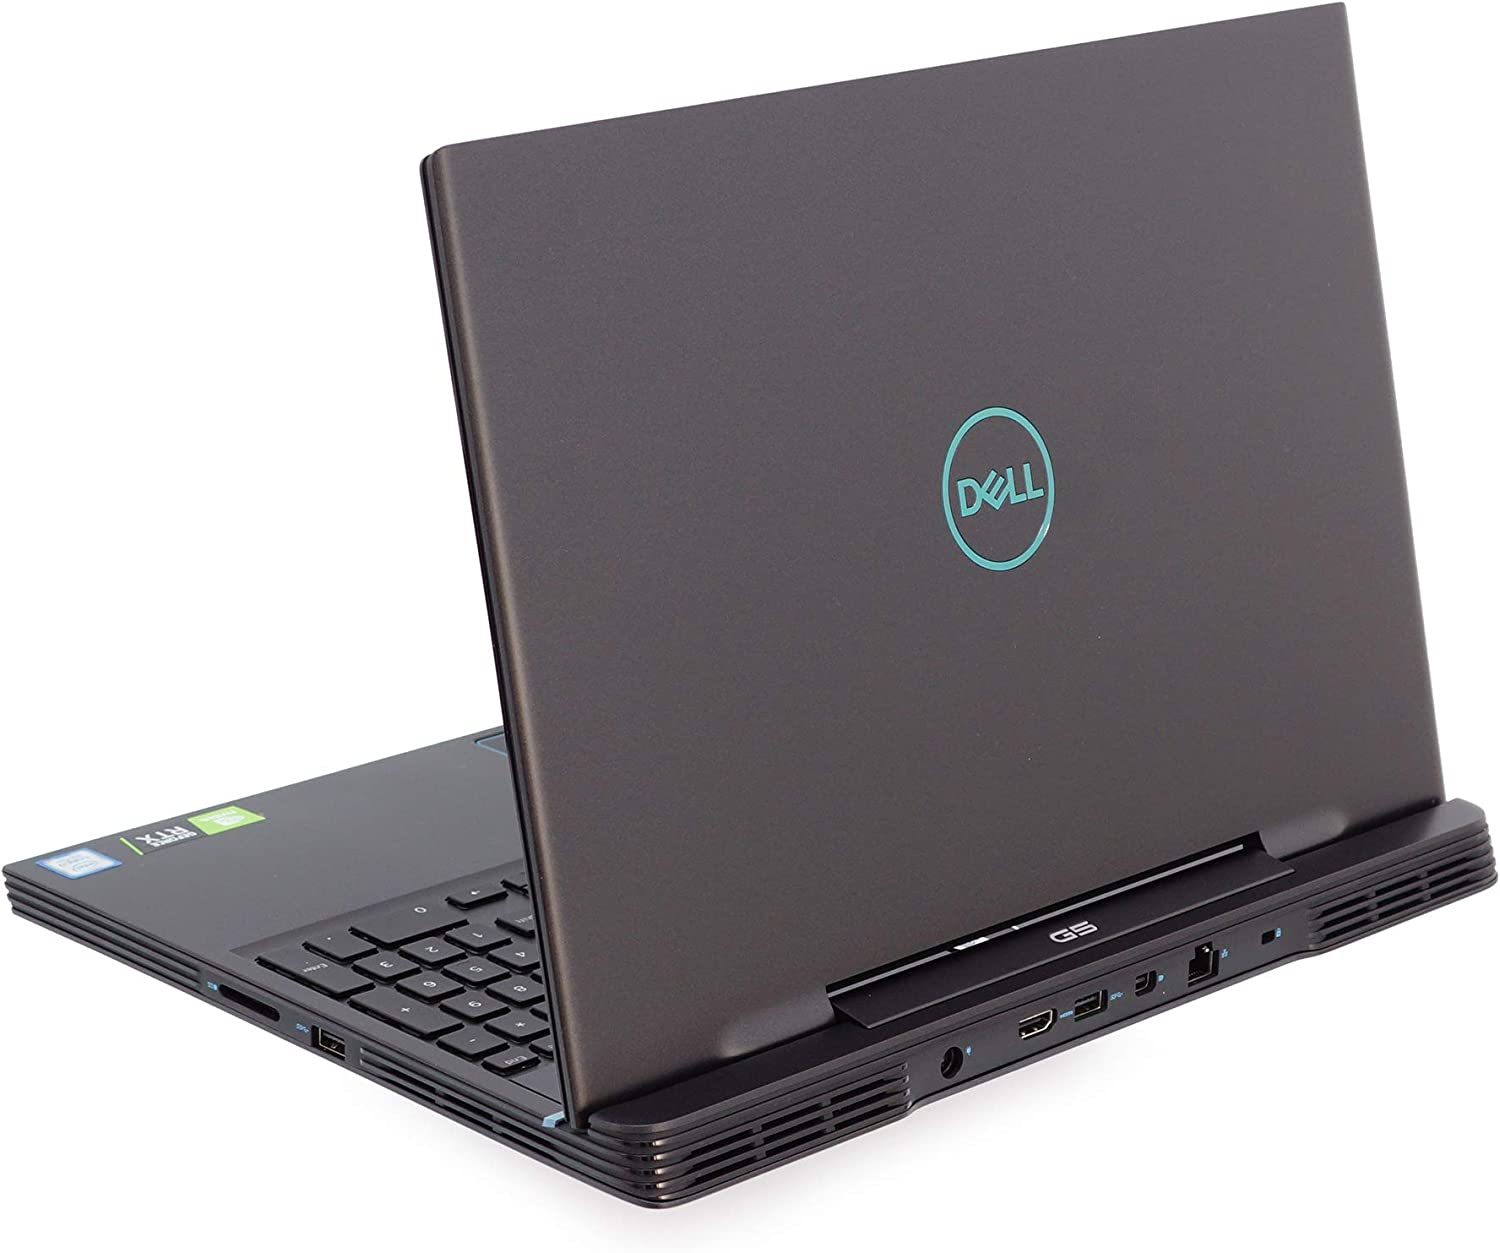 "Dell G5 VR Ready Gaming Laptop, Intel i7-9750H, NVIDIA RTX 2060, 15.6"" FHD 144Hz, 32GB RAM, 1TB NVMe SSD, 6-Cores up to 4.50 GHz, Backlit, HDMI 2.0, 5"